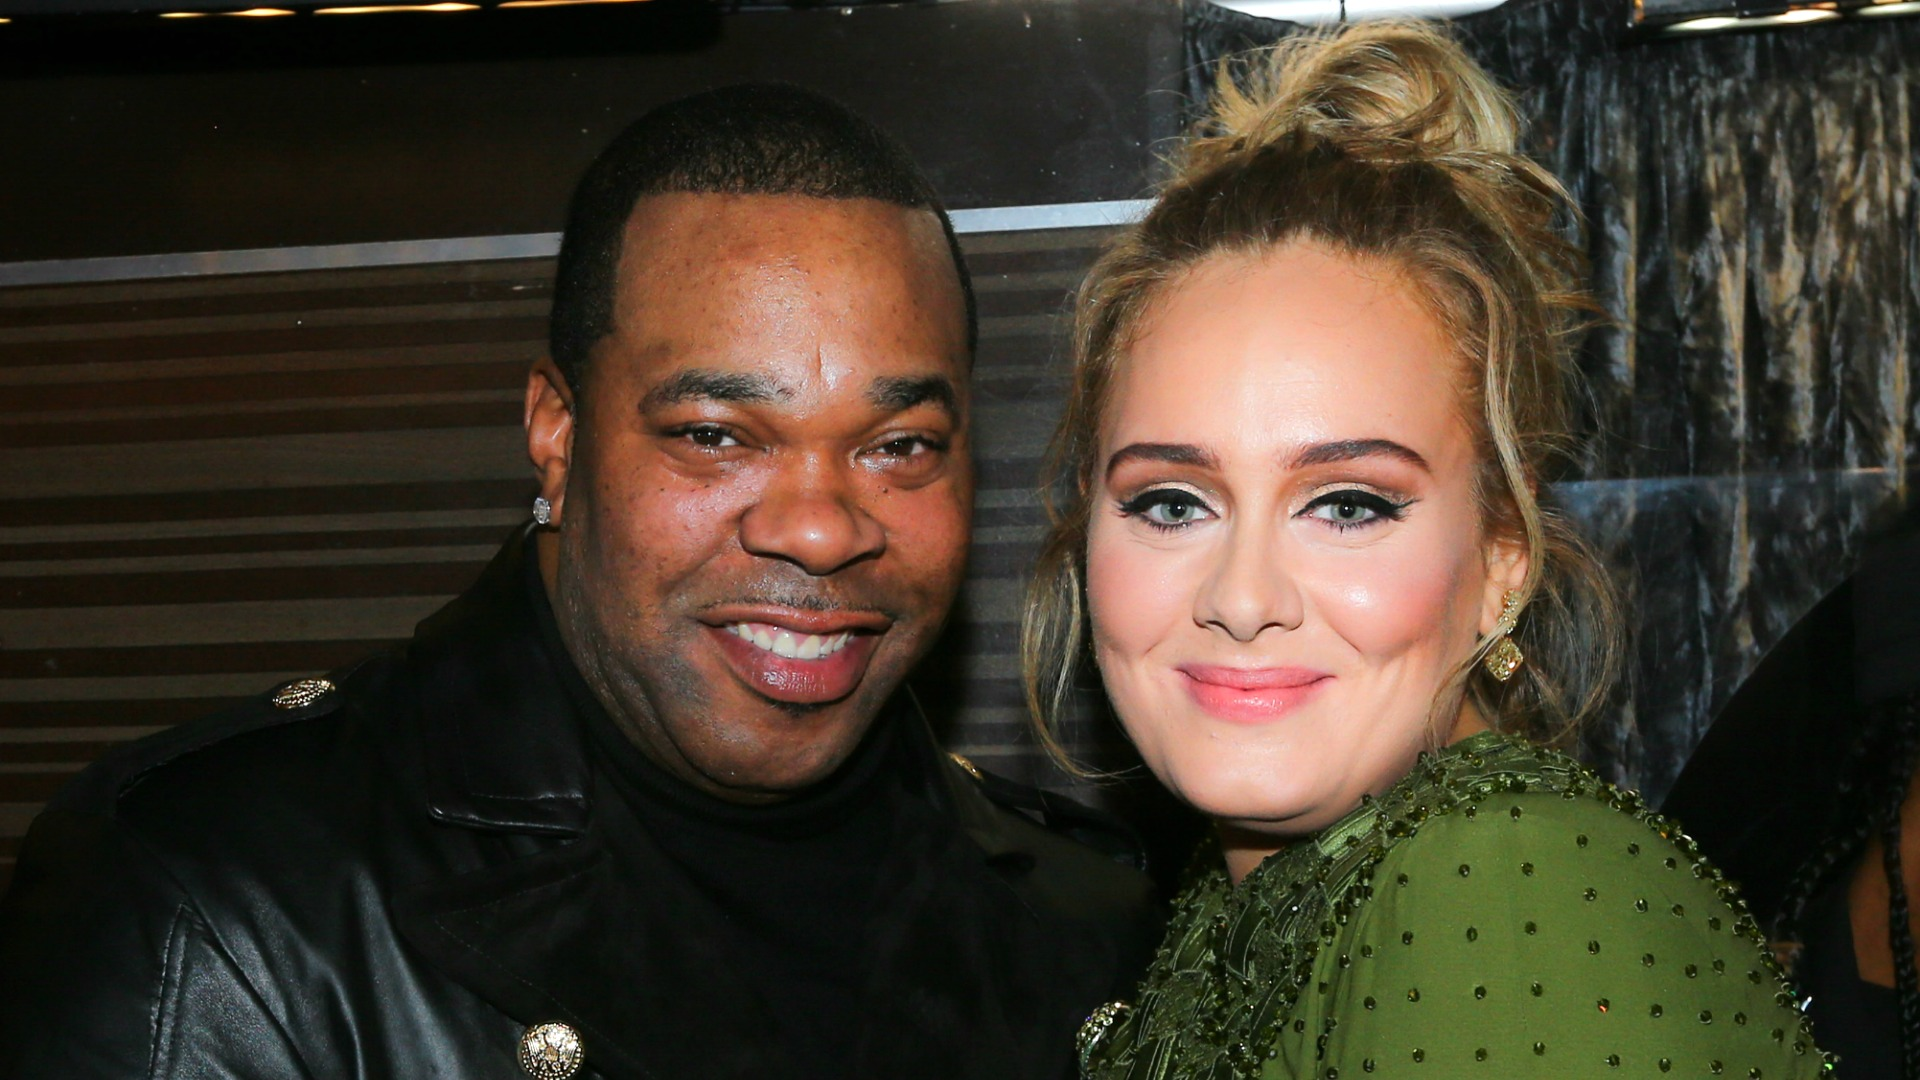 Maybe Busta Rhymes will write a new rap about his hang sesh with Adele.